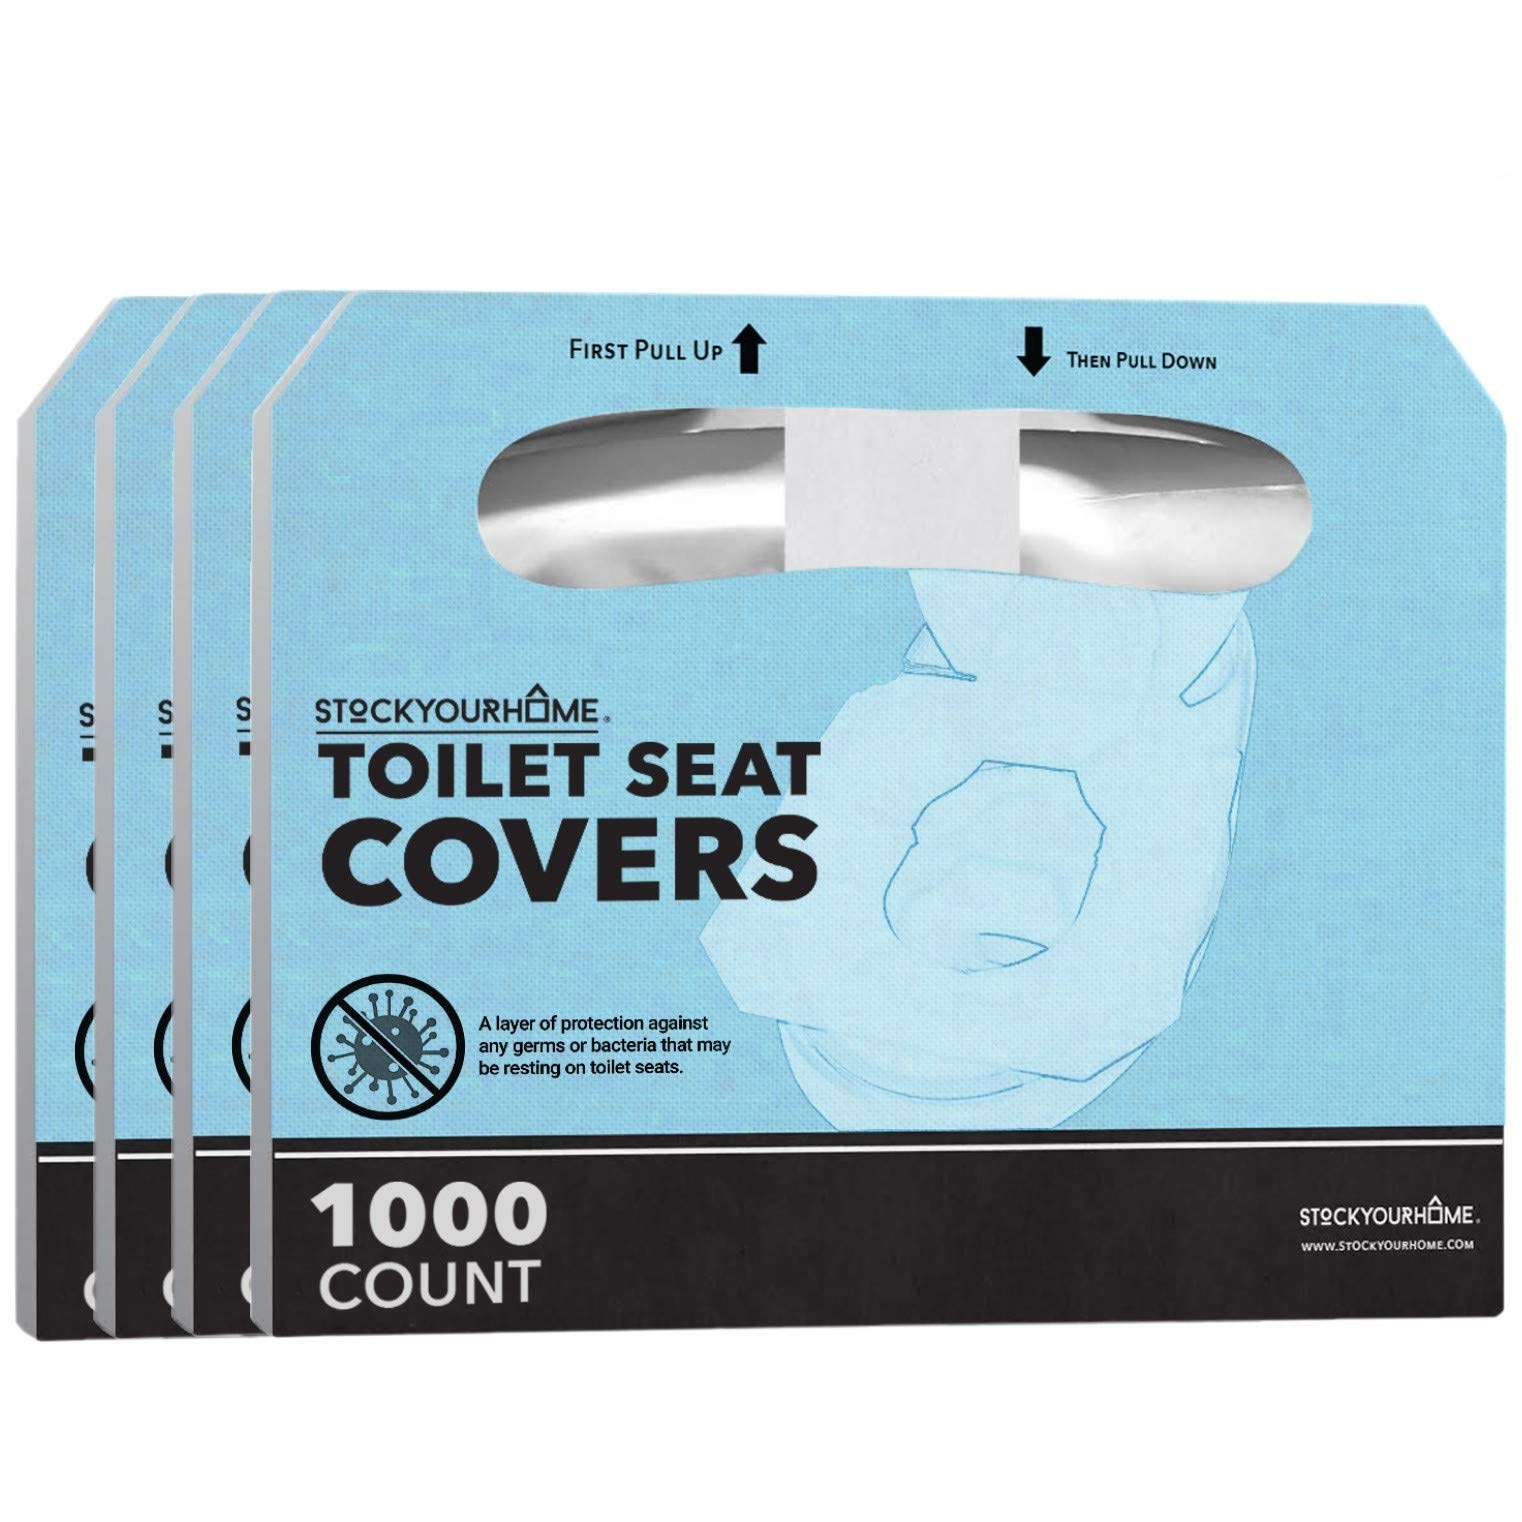 Stock Your Home Paper Toilet Seat Covers Disposable (1000 Count) Half Fold Paper Toilet Covers Disposable for Toilet Seat Cover Dispenser - Paper Toilet Liners Flushable Seat Covers 14 X 16